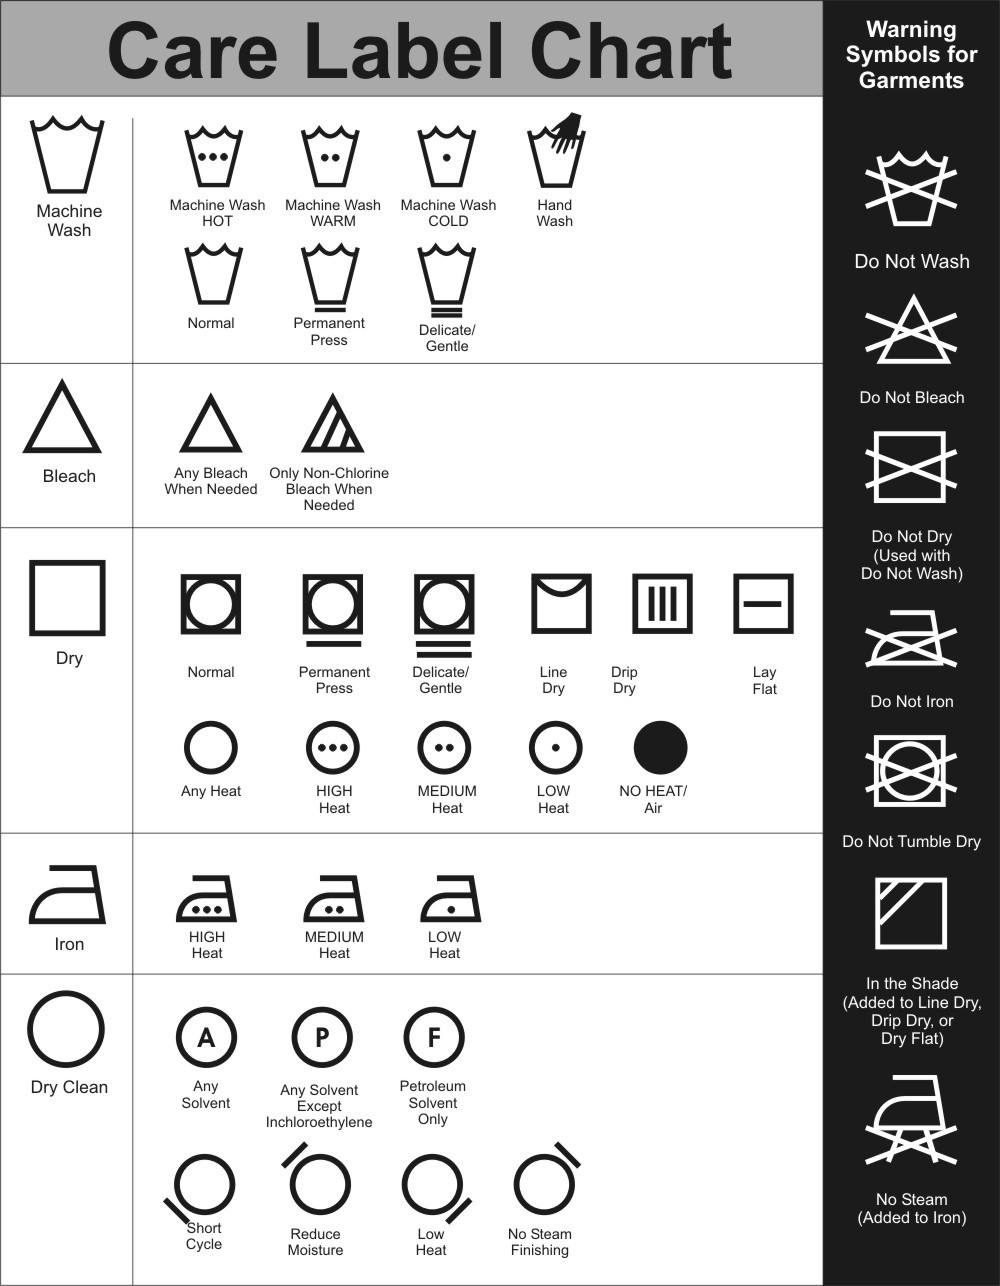 Dry Cleaning Symbols What Do They Mean Bibbentuckers